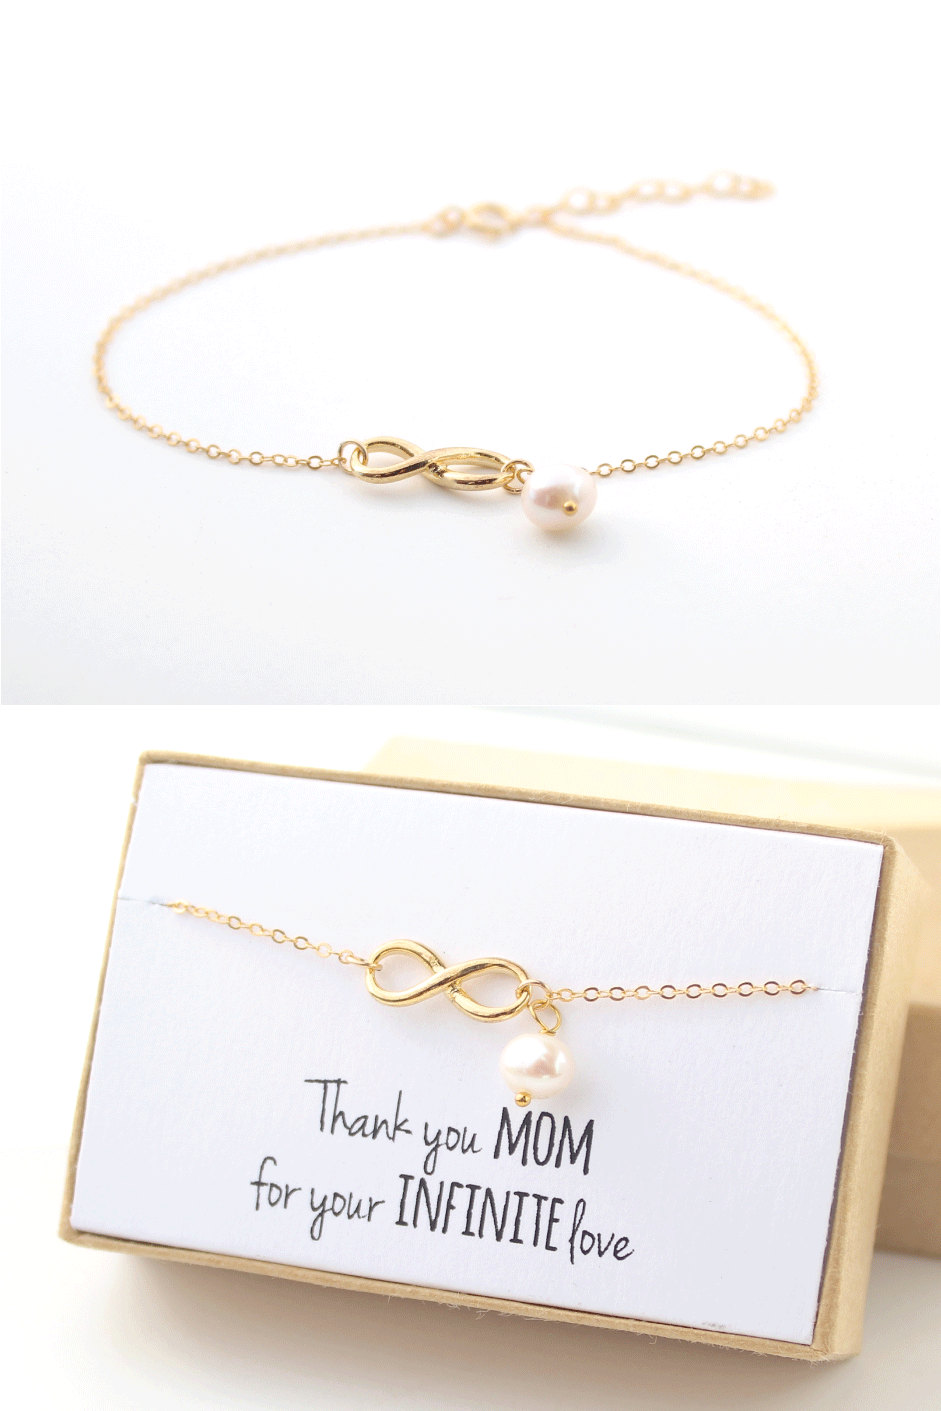 Thoughtful gifts to thank your loved ones - Ceremonies by Camille